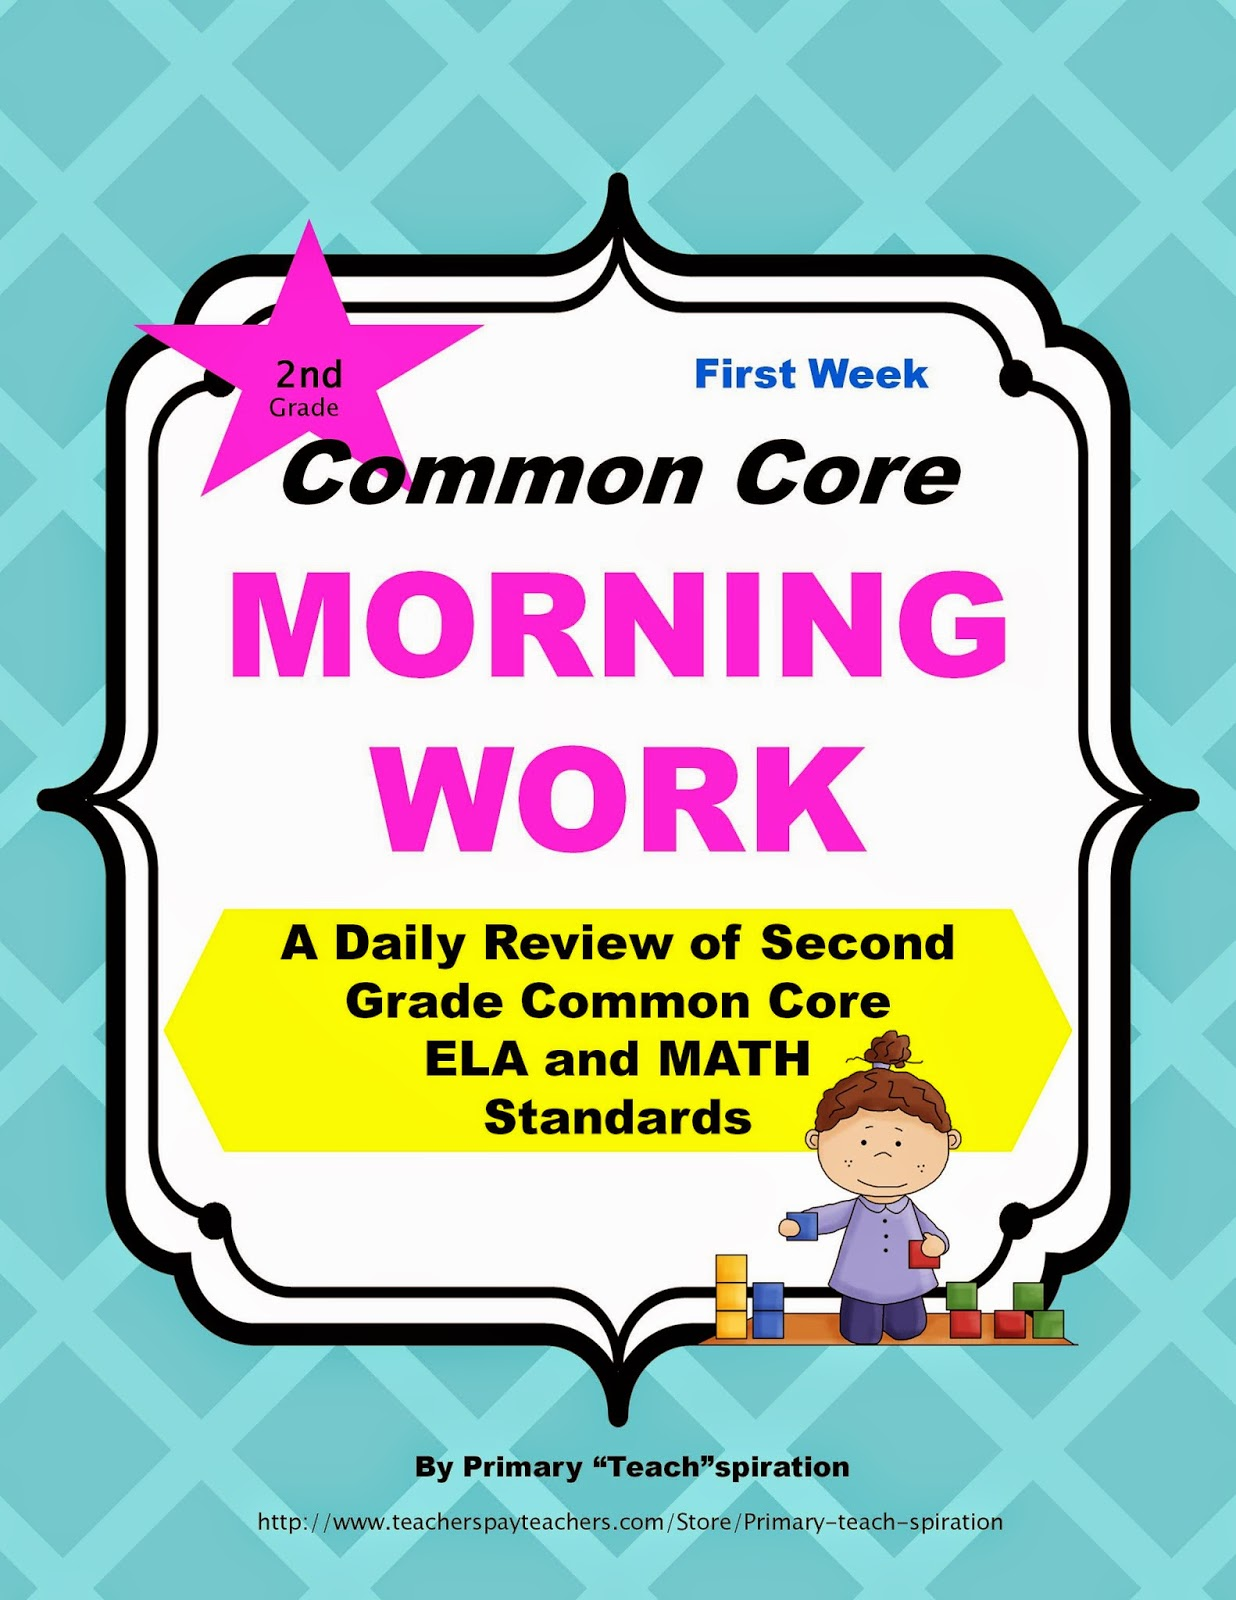 Grab this Free Morning Work and read about an easy and effective way to make sure your first graders are learning the Common Core skills. #secondgradecommoncore, #secondgrademorningroutine, #freemorningwork